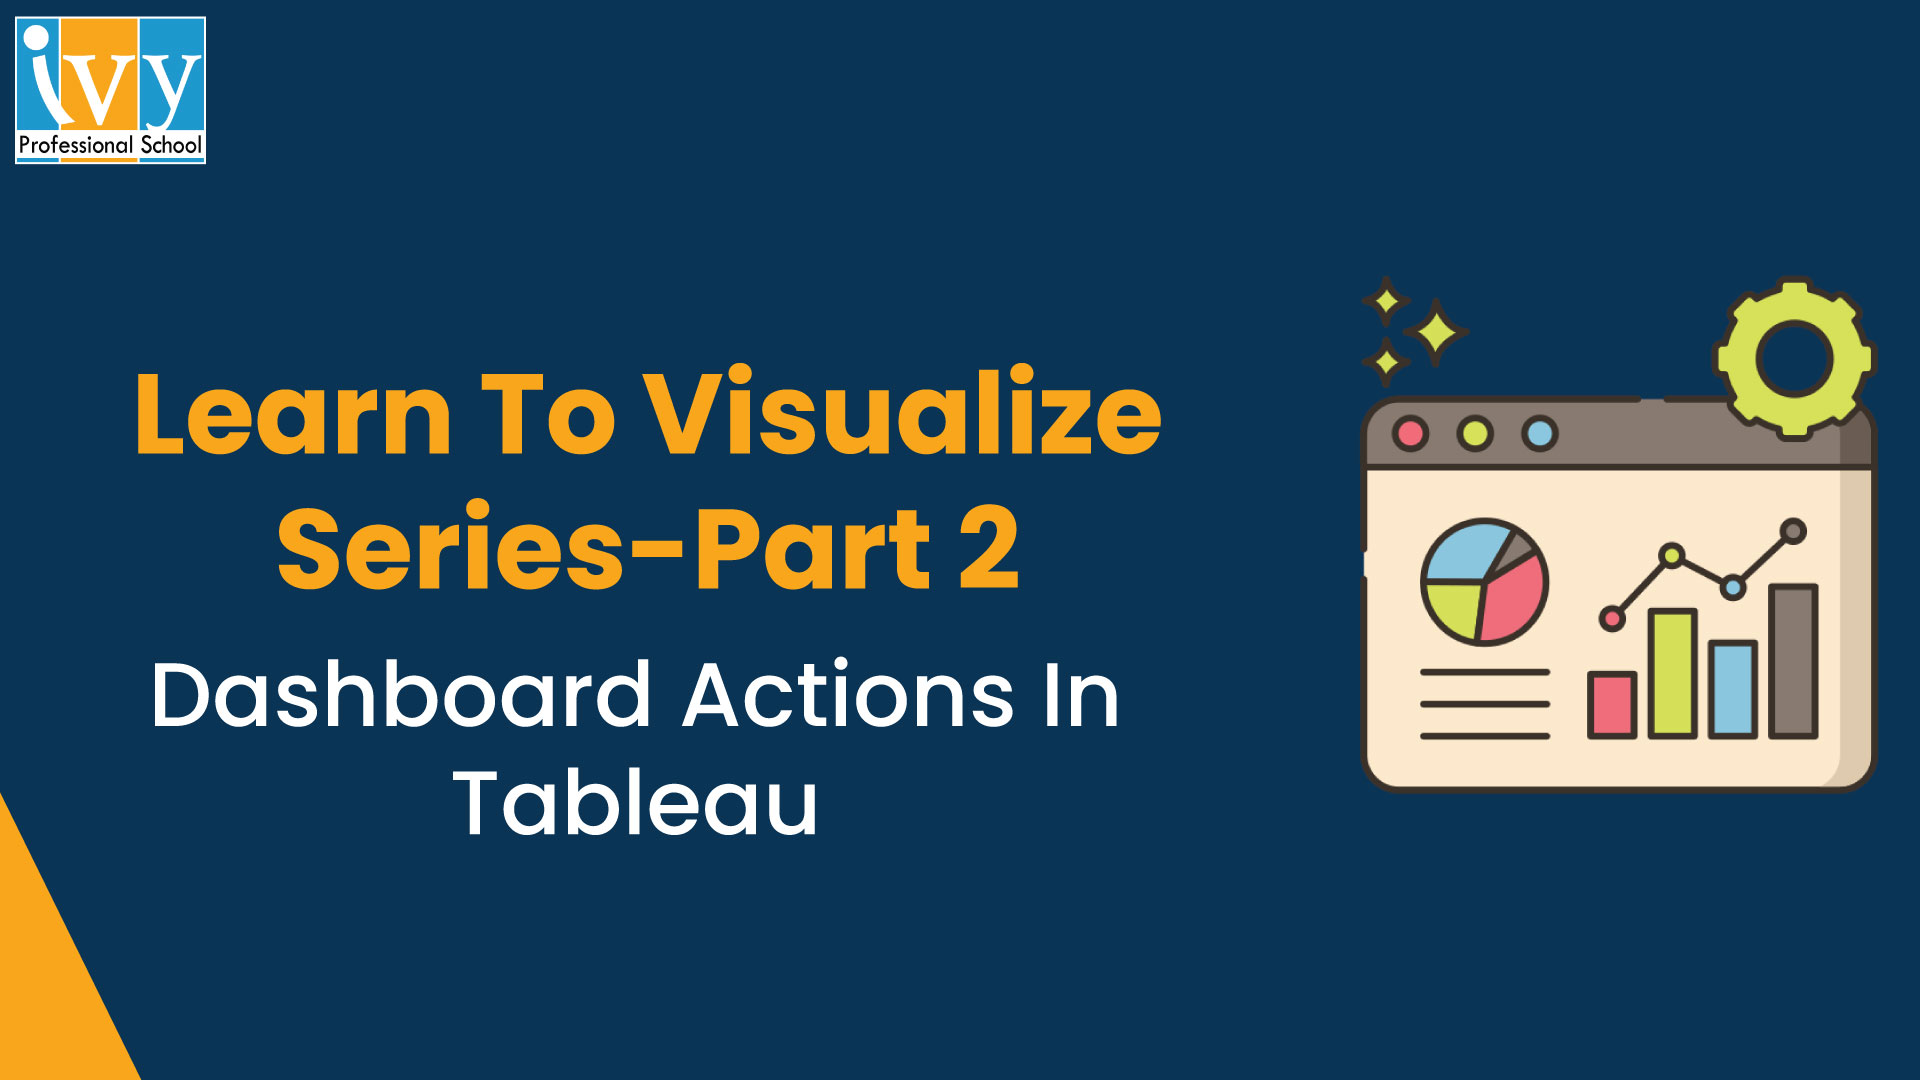 Dashboard Actions in Tableau